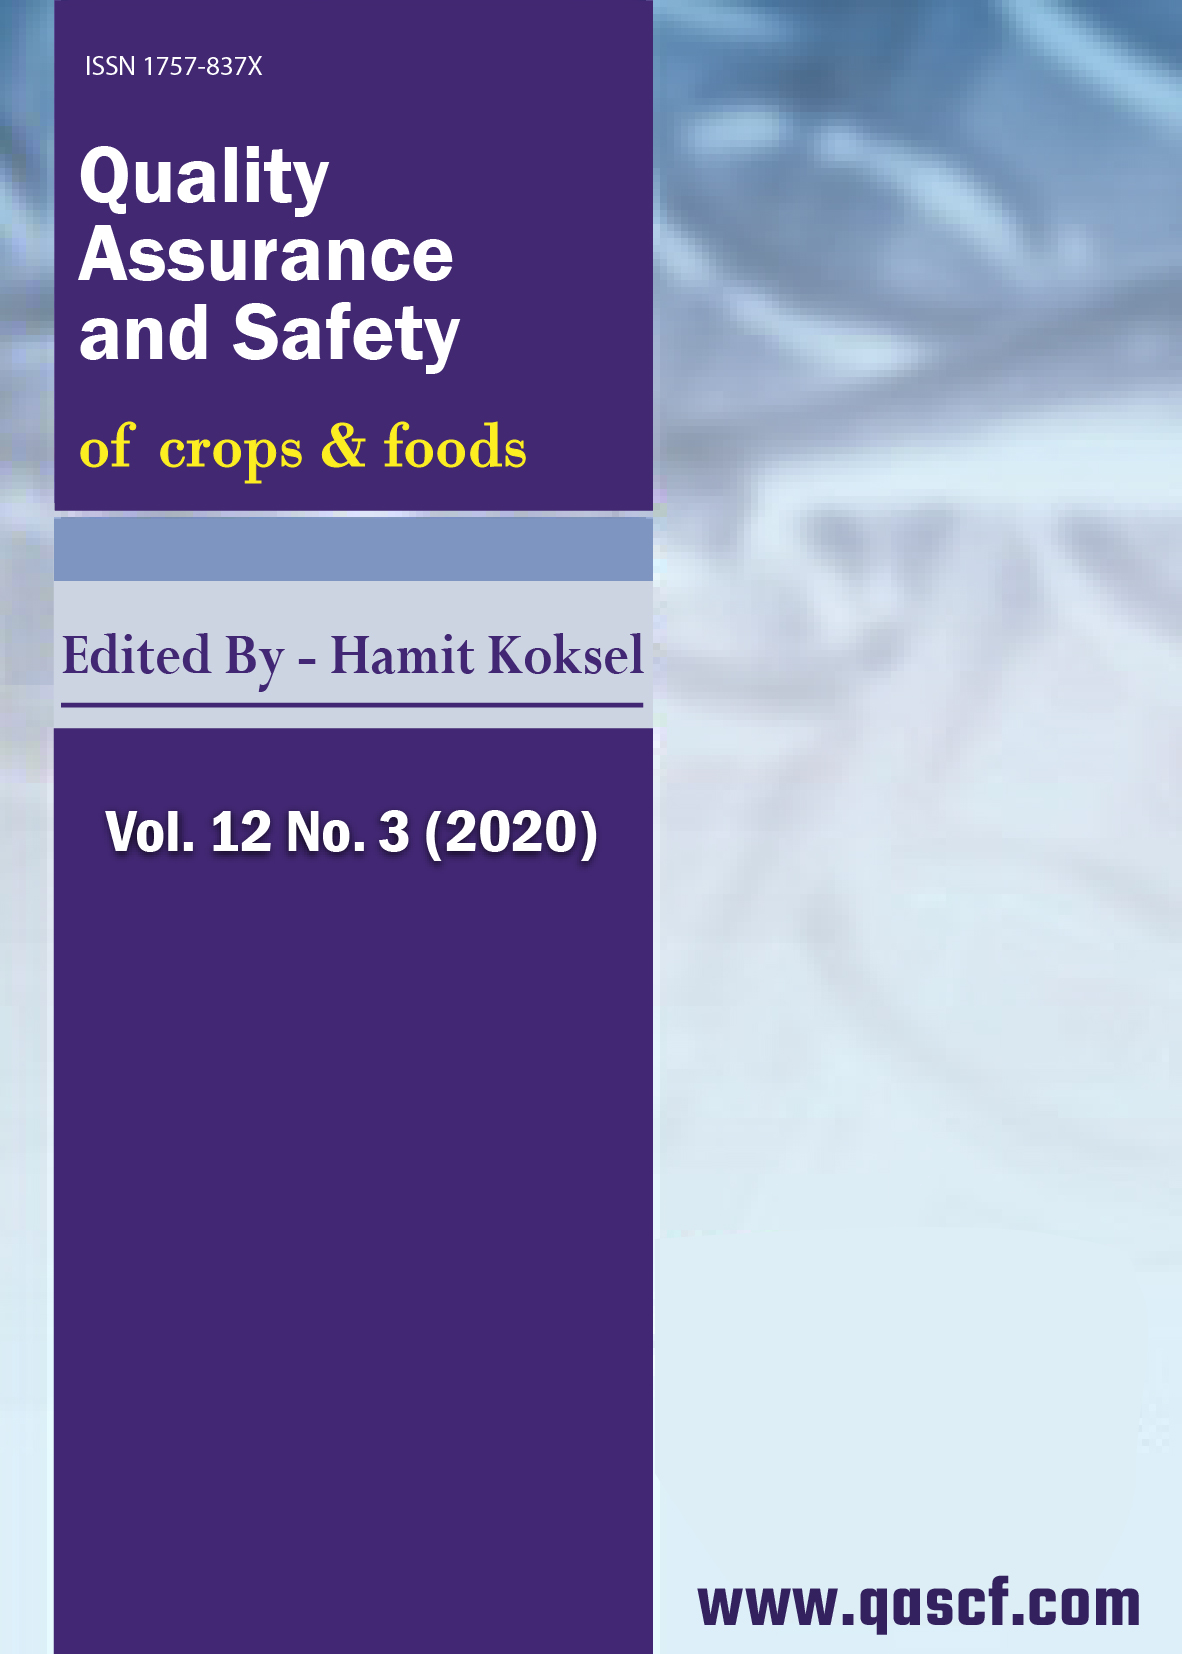 Quality Assurance and Safety of Crops & Foods: Vol. 12 No. 3 (2020)